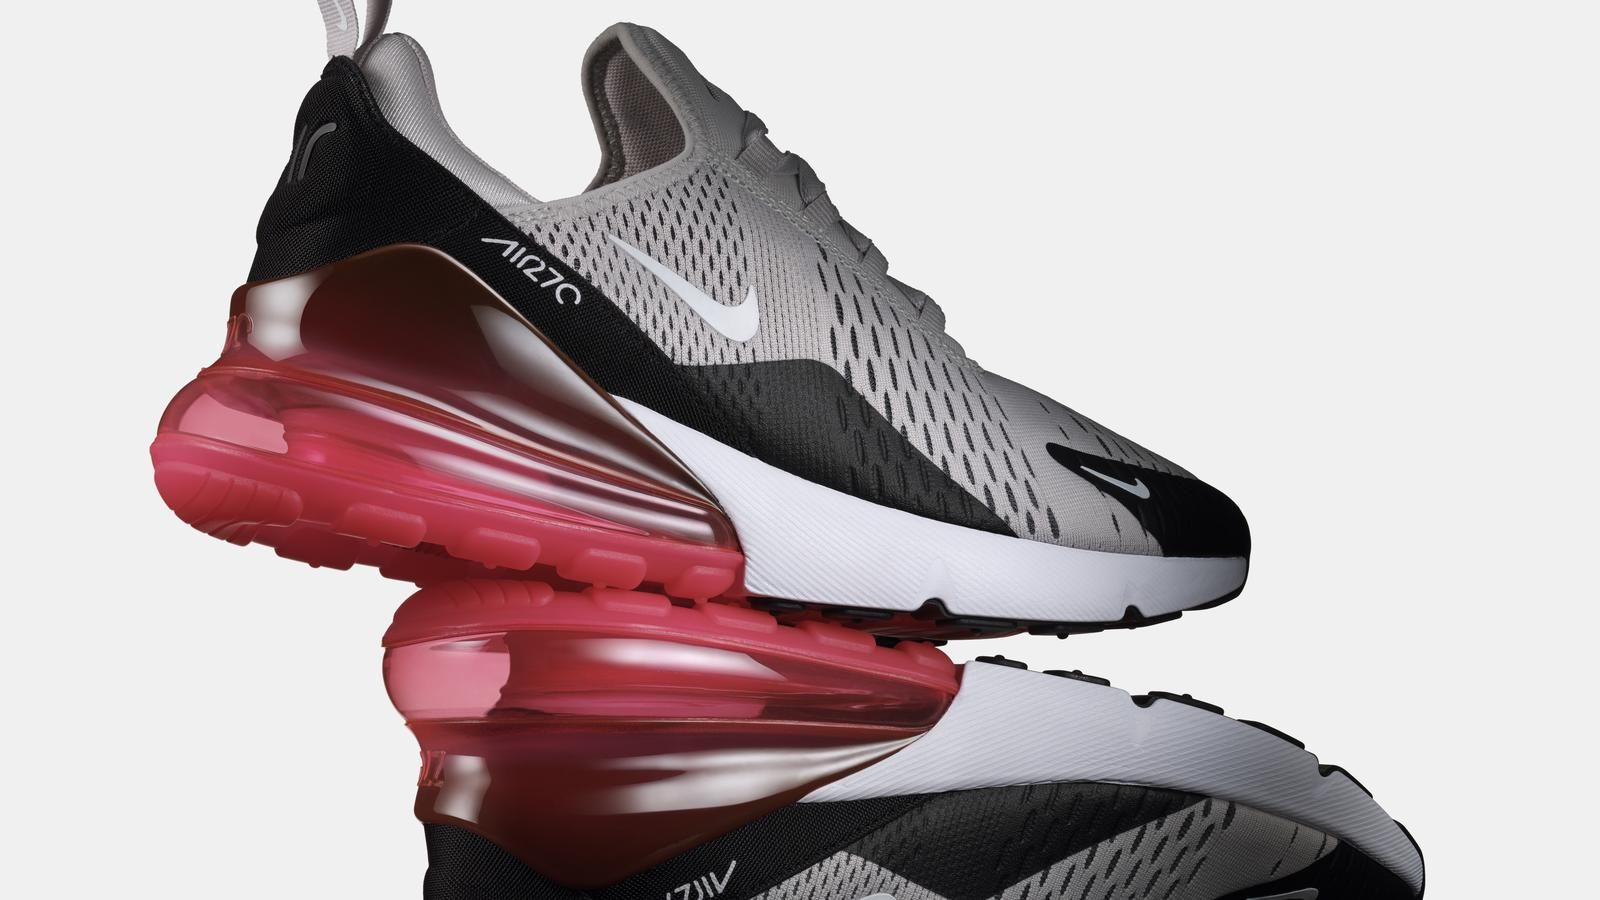 Eight Facts About the All-New Air Max 270 - Nike News 569cc3001